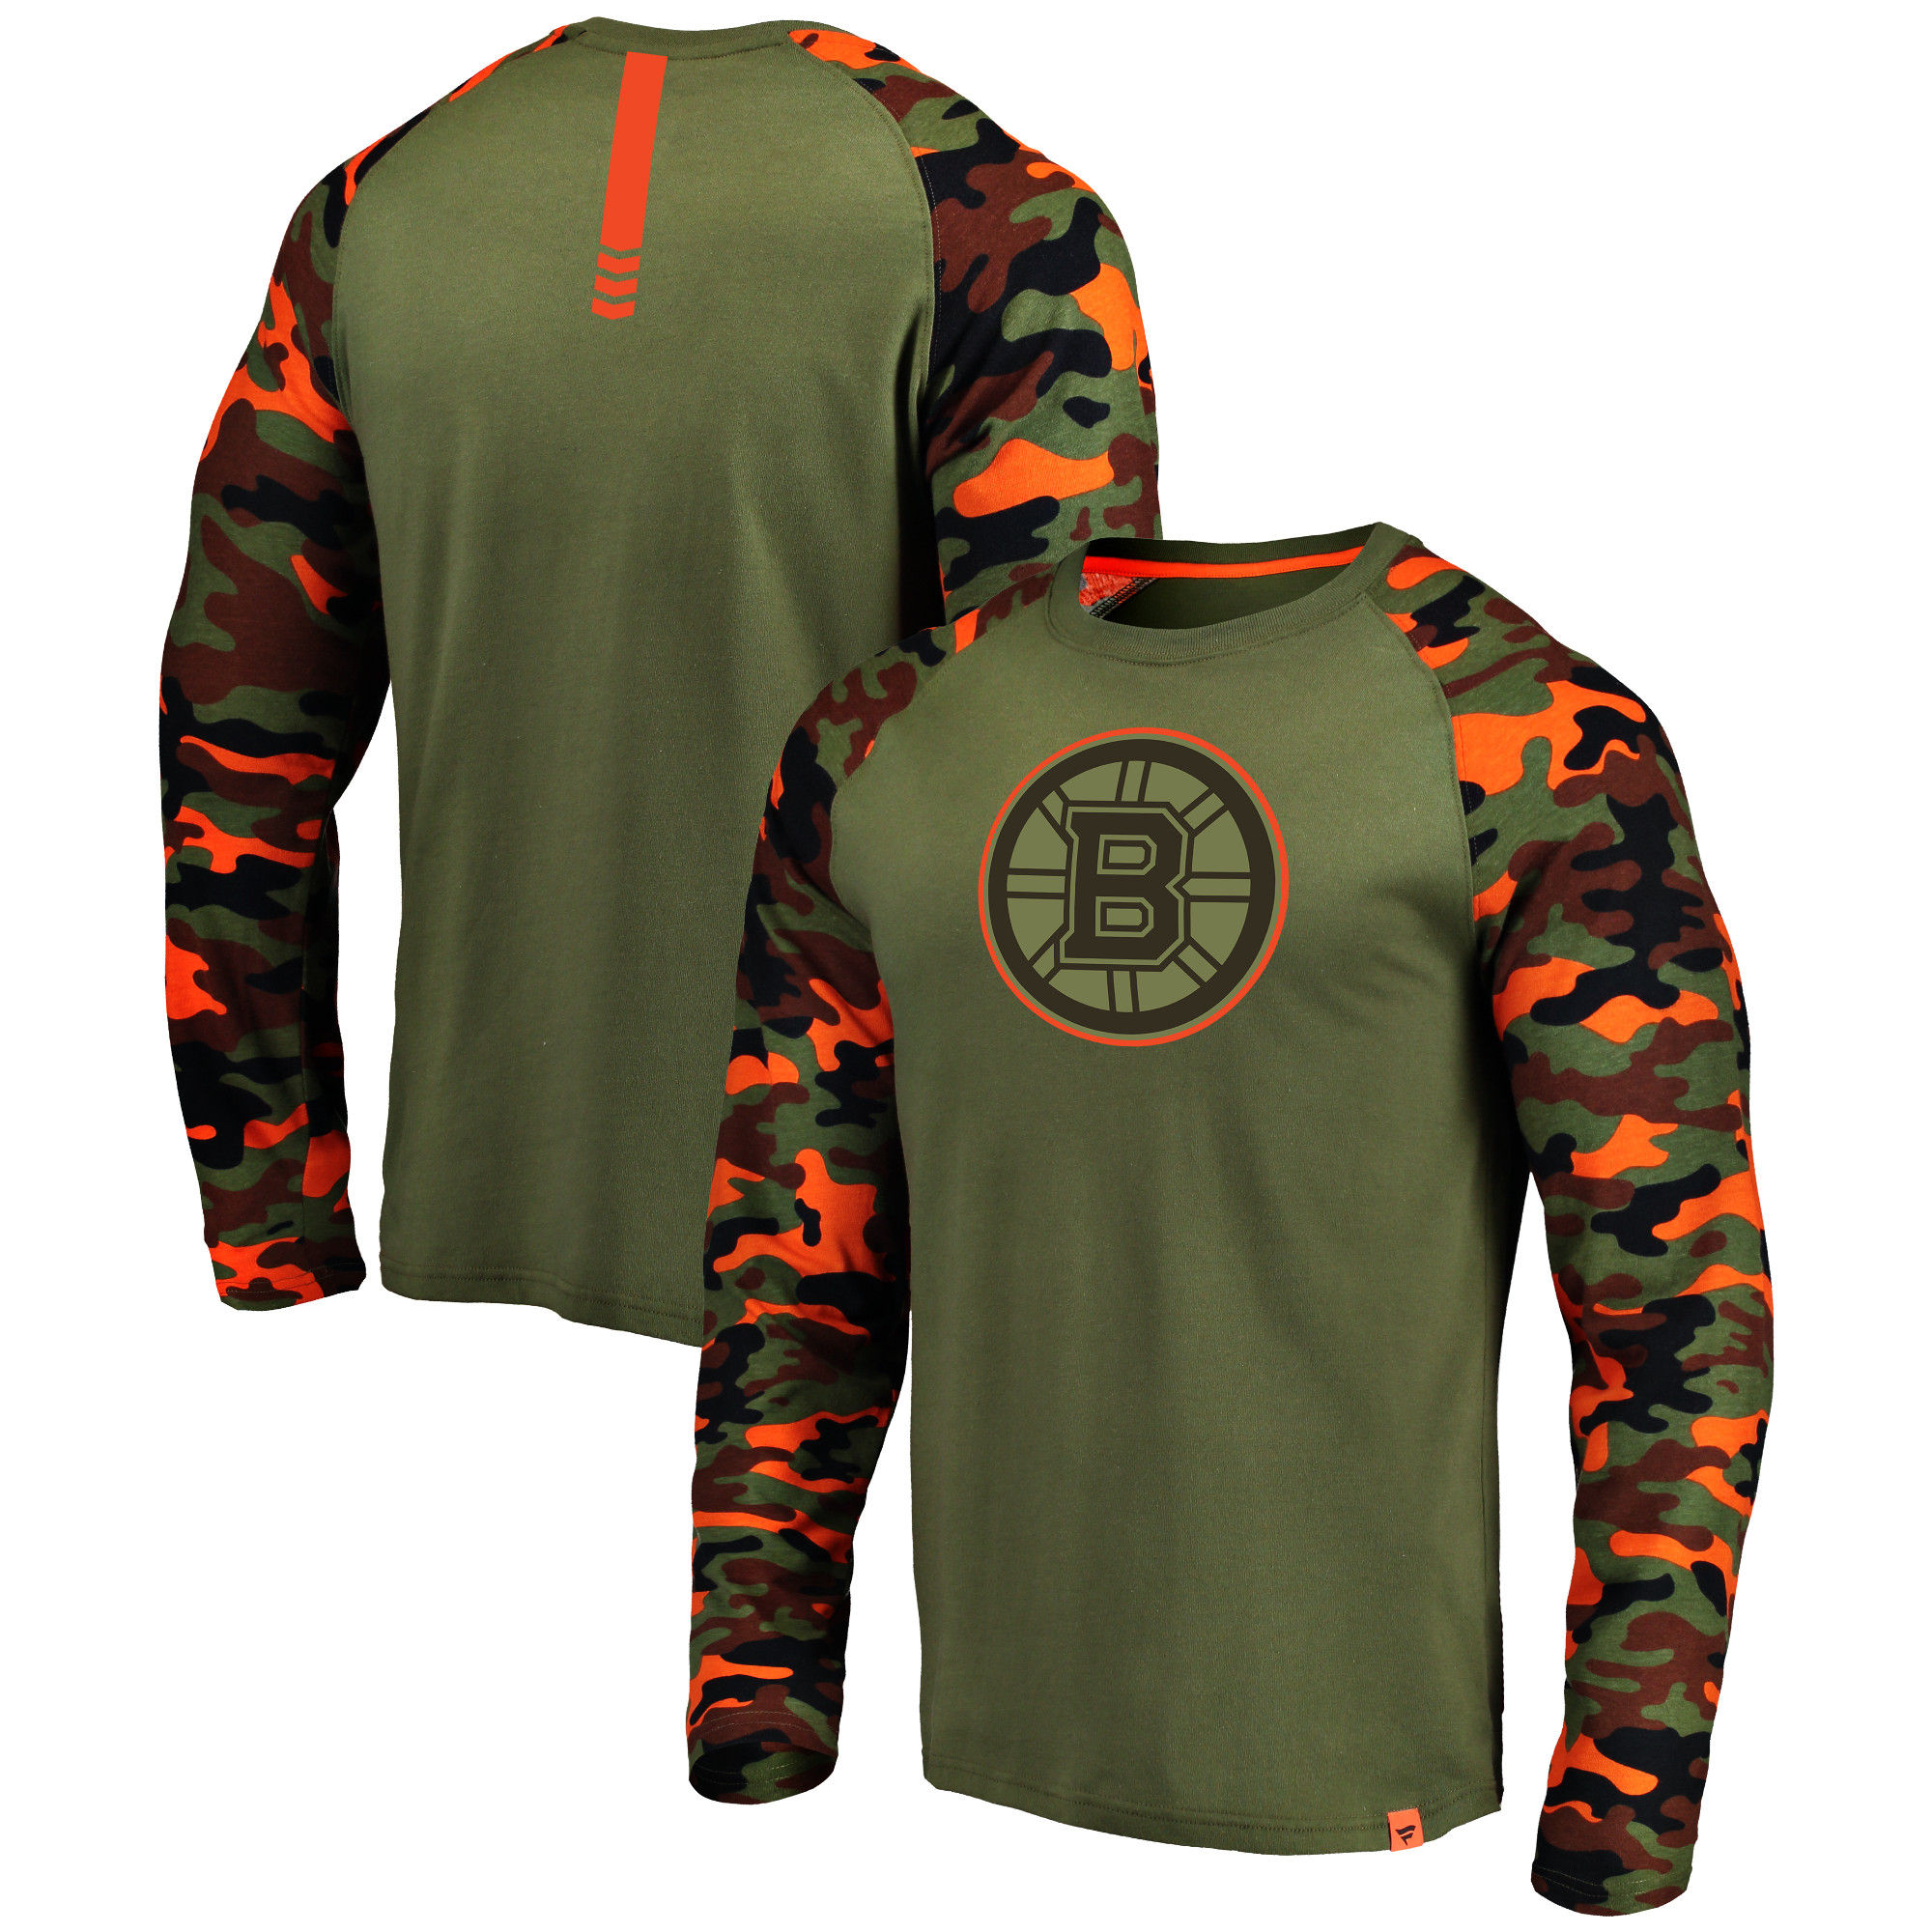 Boston Bruins Fanatics Branded Olive/Camo Recon Long Sleeve Raglan T-Shirt